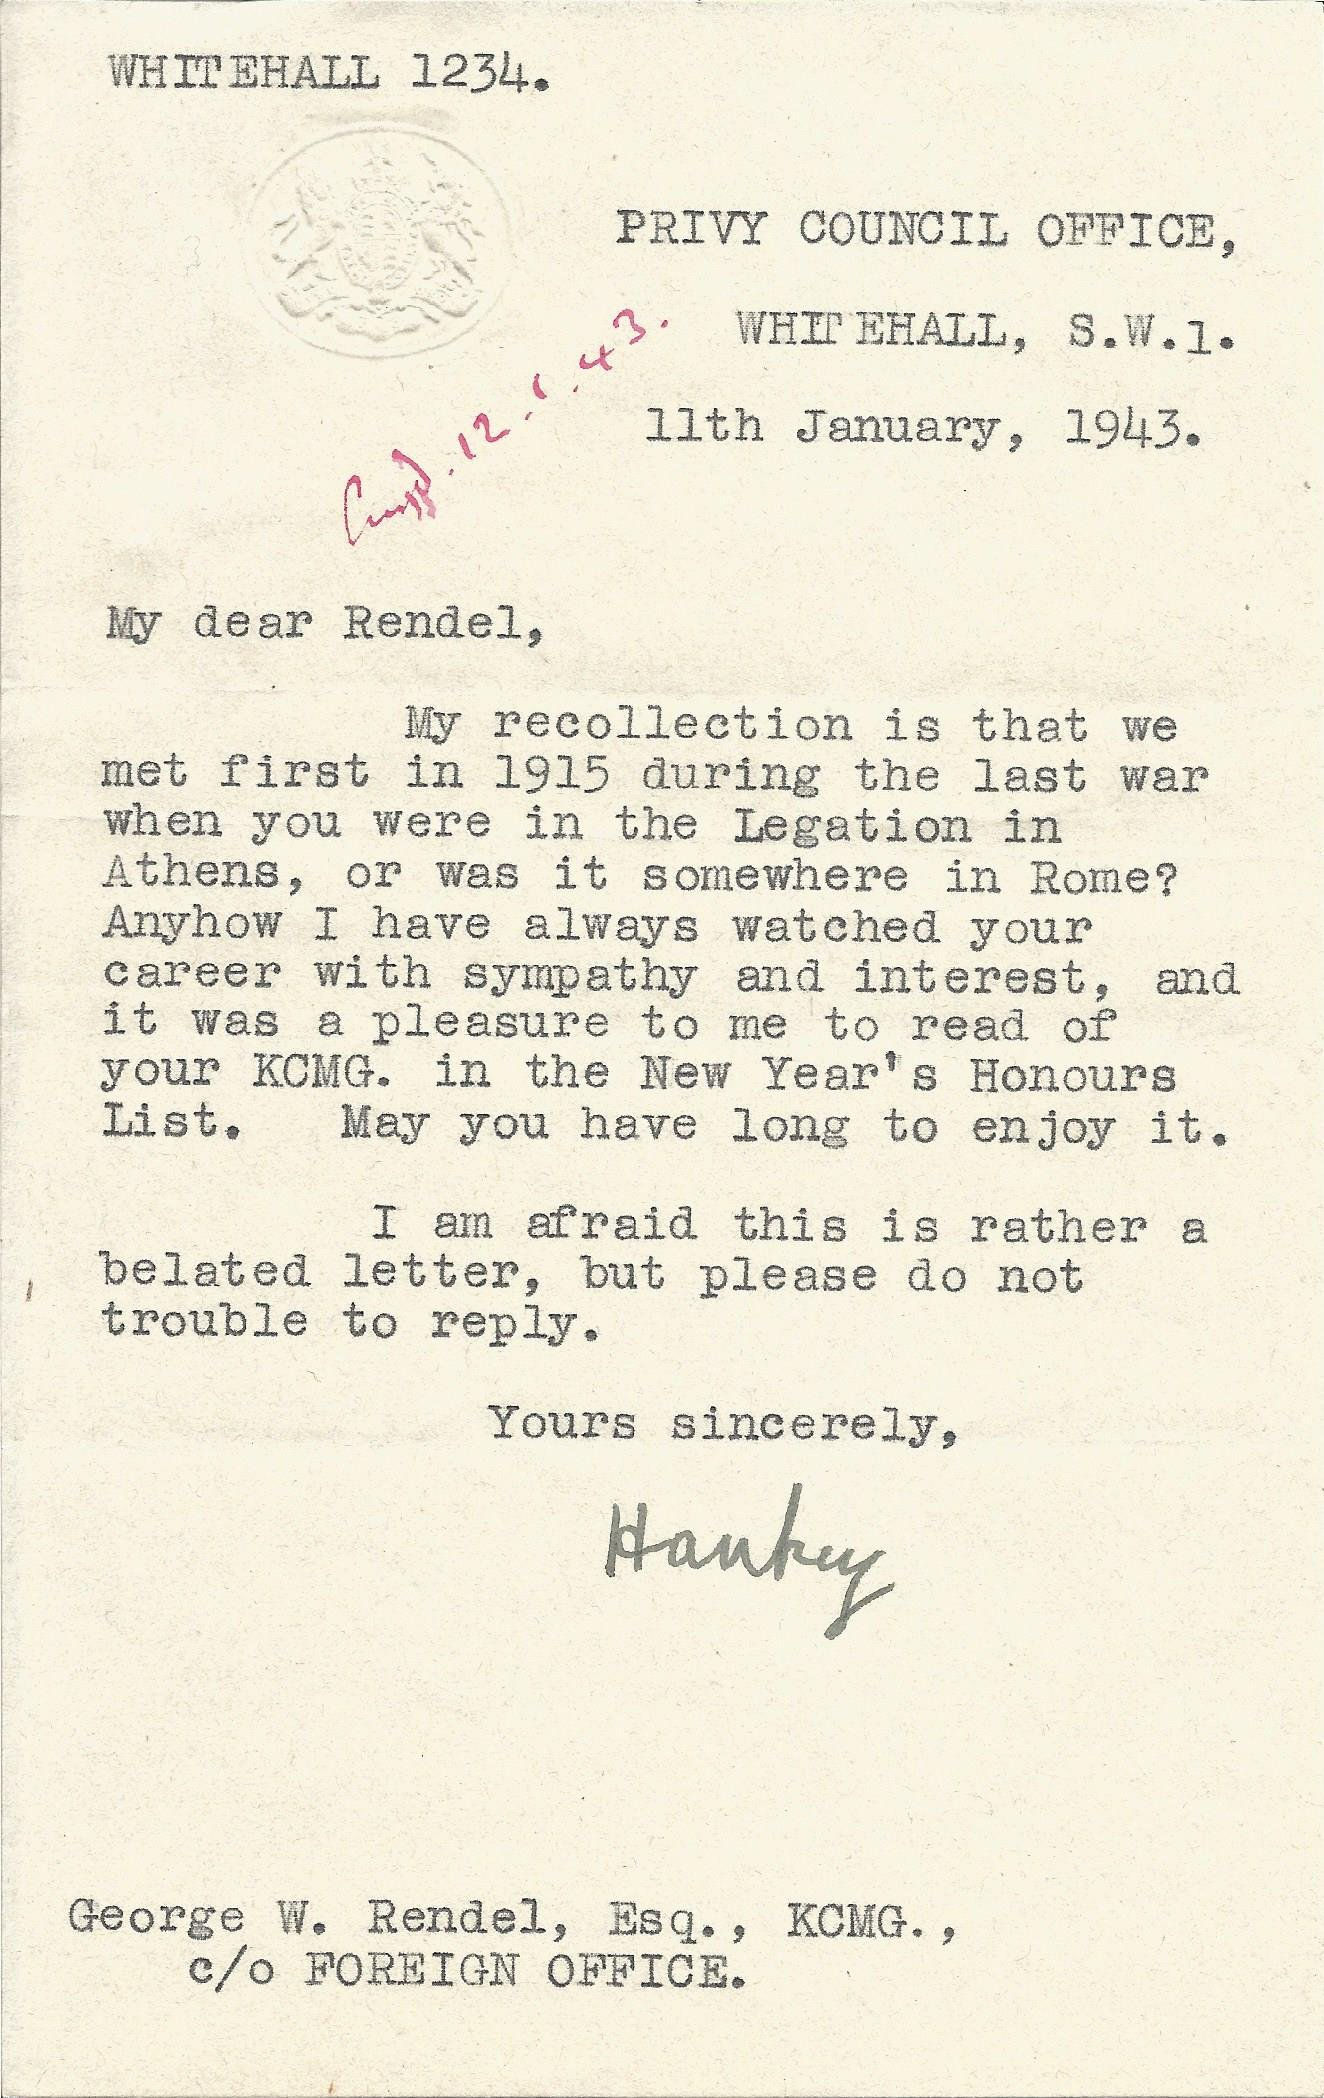 Lord Hankey 1943 typed signed letter on Privy Council